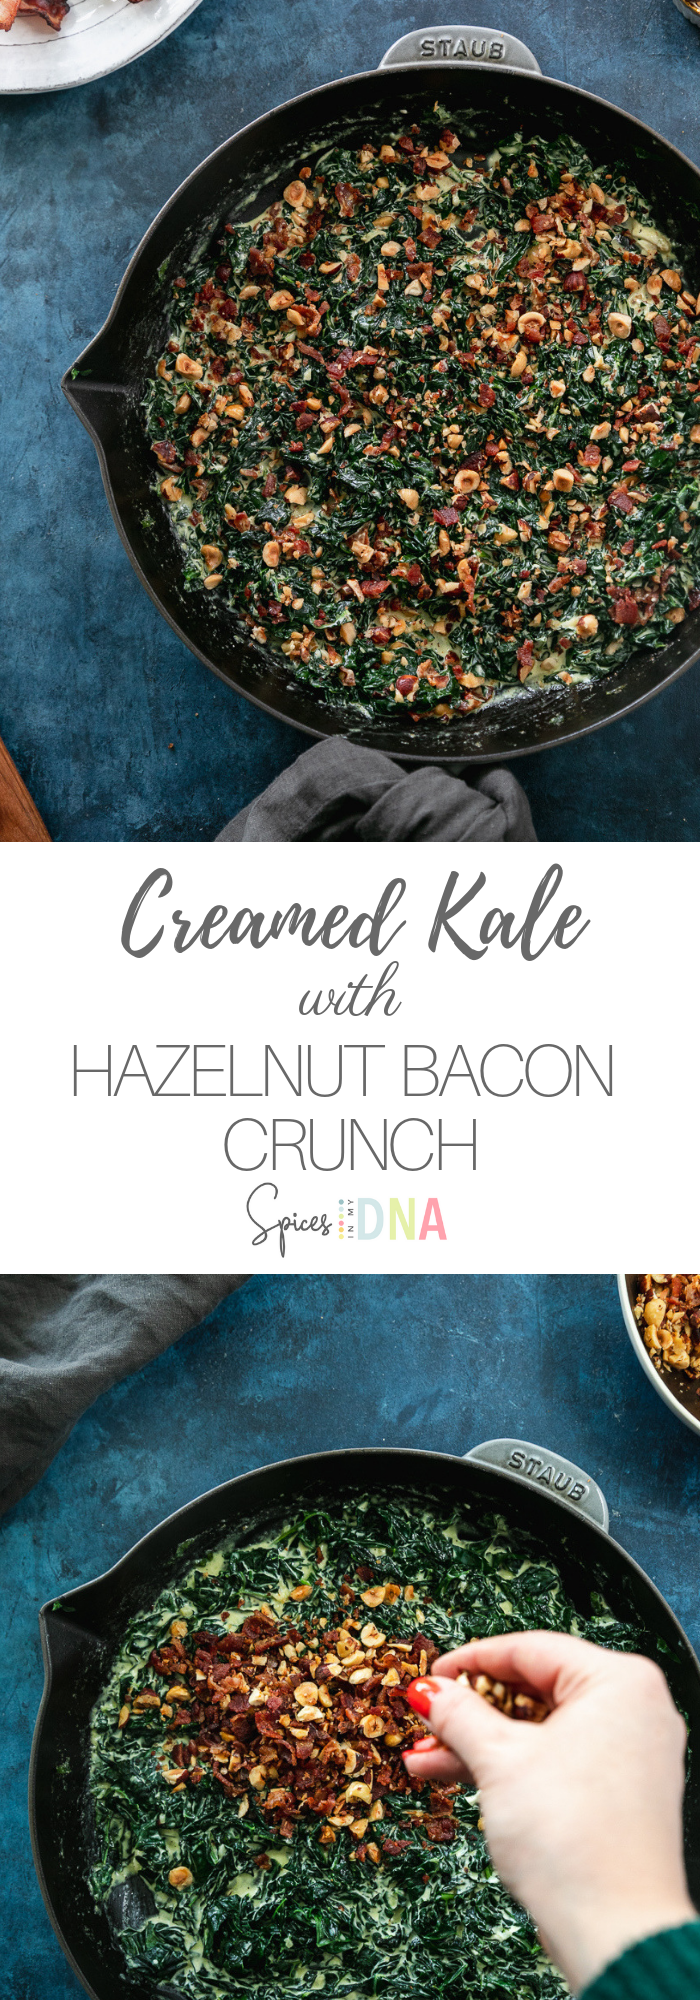 This Creamed Kale with Hazelnut Bacon Crunch is unbelievably delicious and addicting, and it's the perfect Thanksgiving or easy holiday side dish! It's filled with lots of texture from the chopped hazelnuts and crumbled bacon, and it's creaminess comes from heavy cream and a touch of cream cheese for a little extra something! #kale #bacon #thanksgiving #sidedish